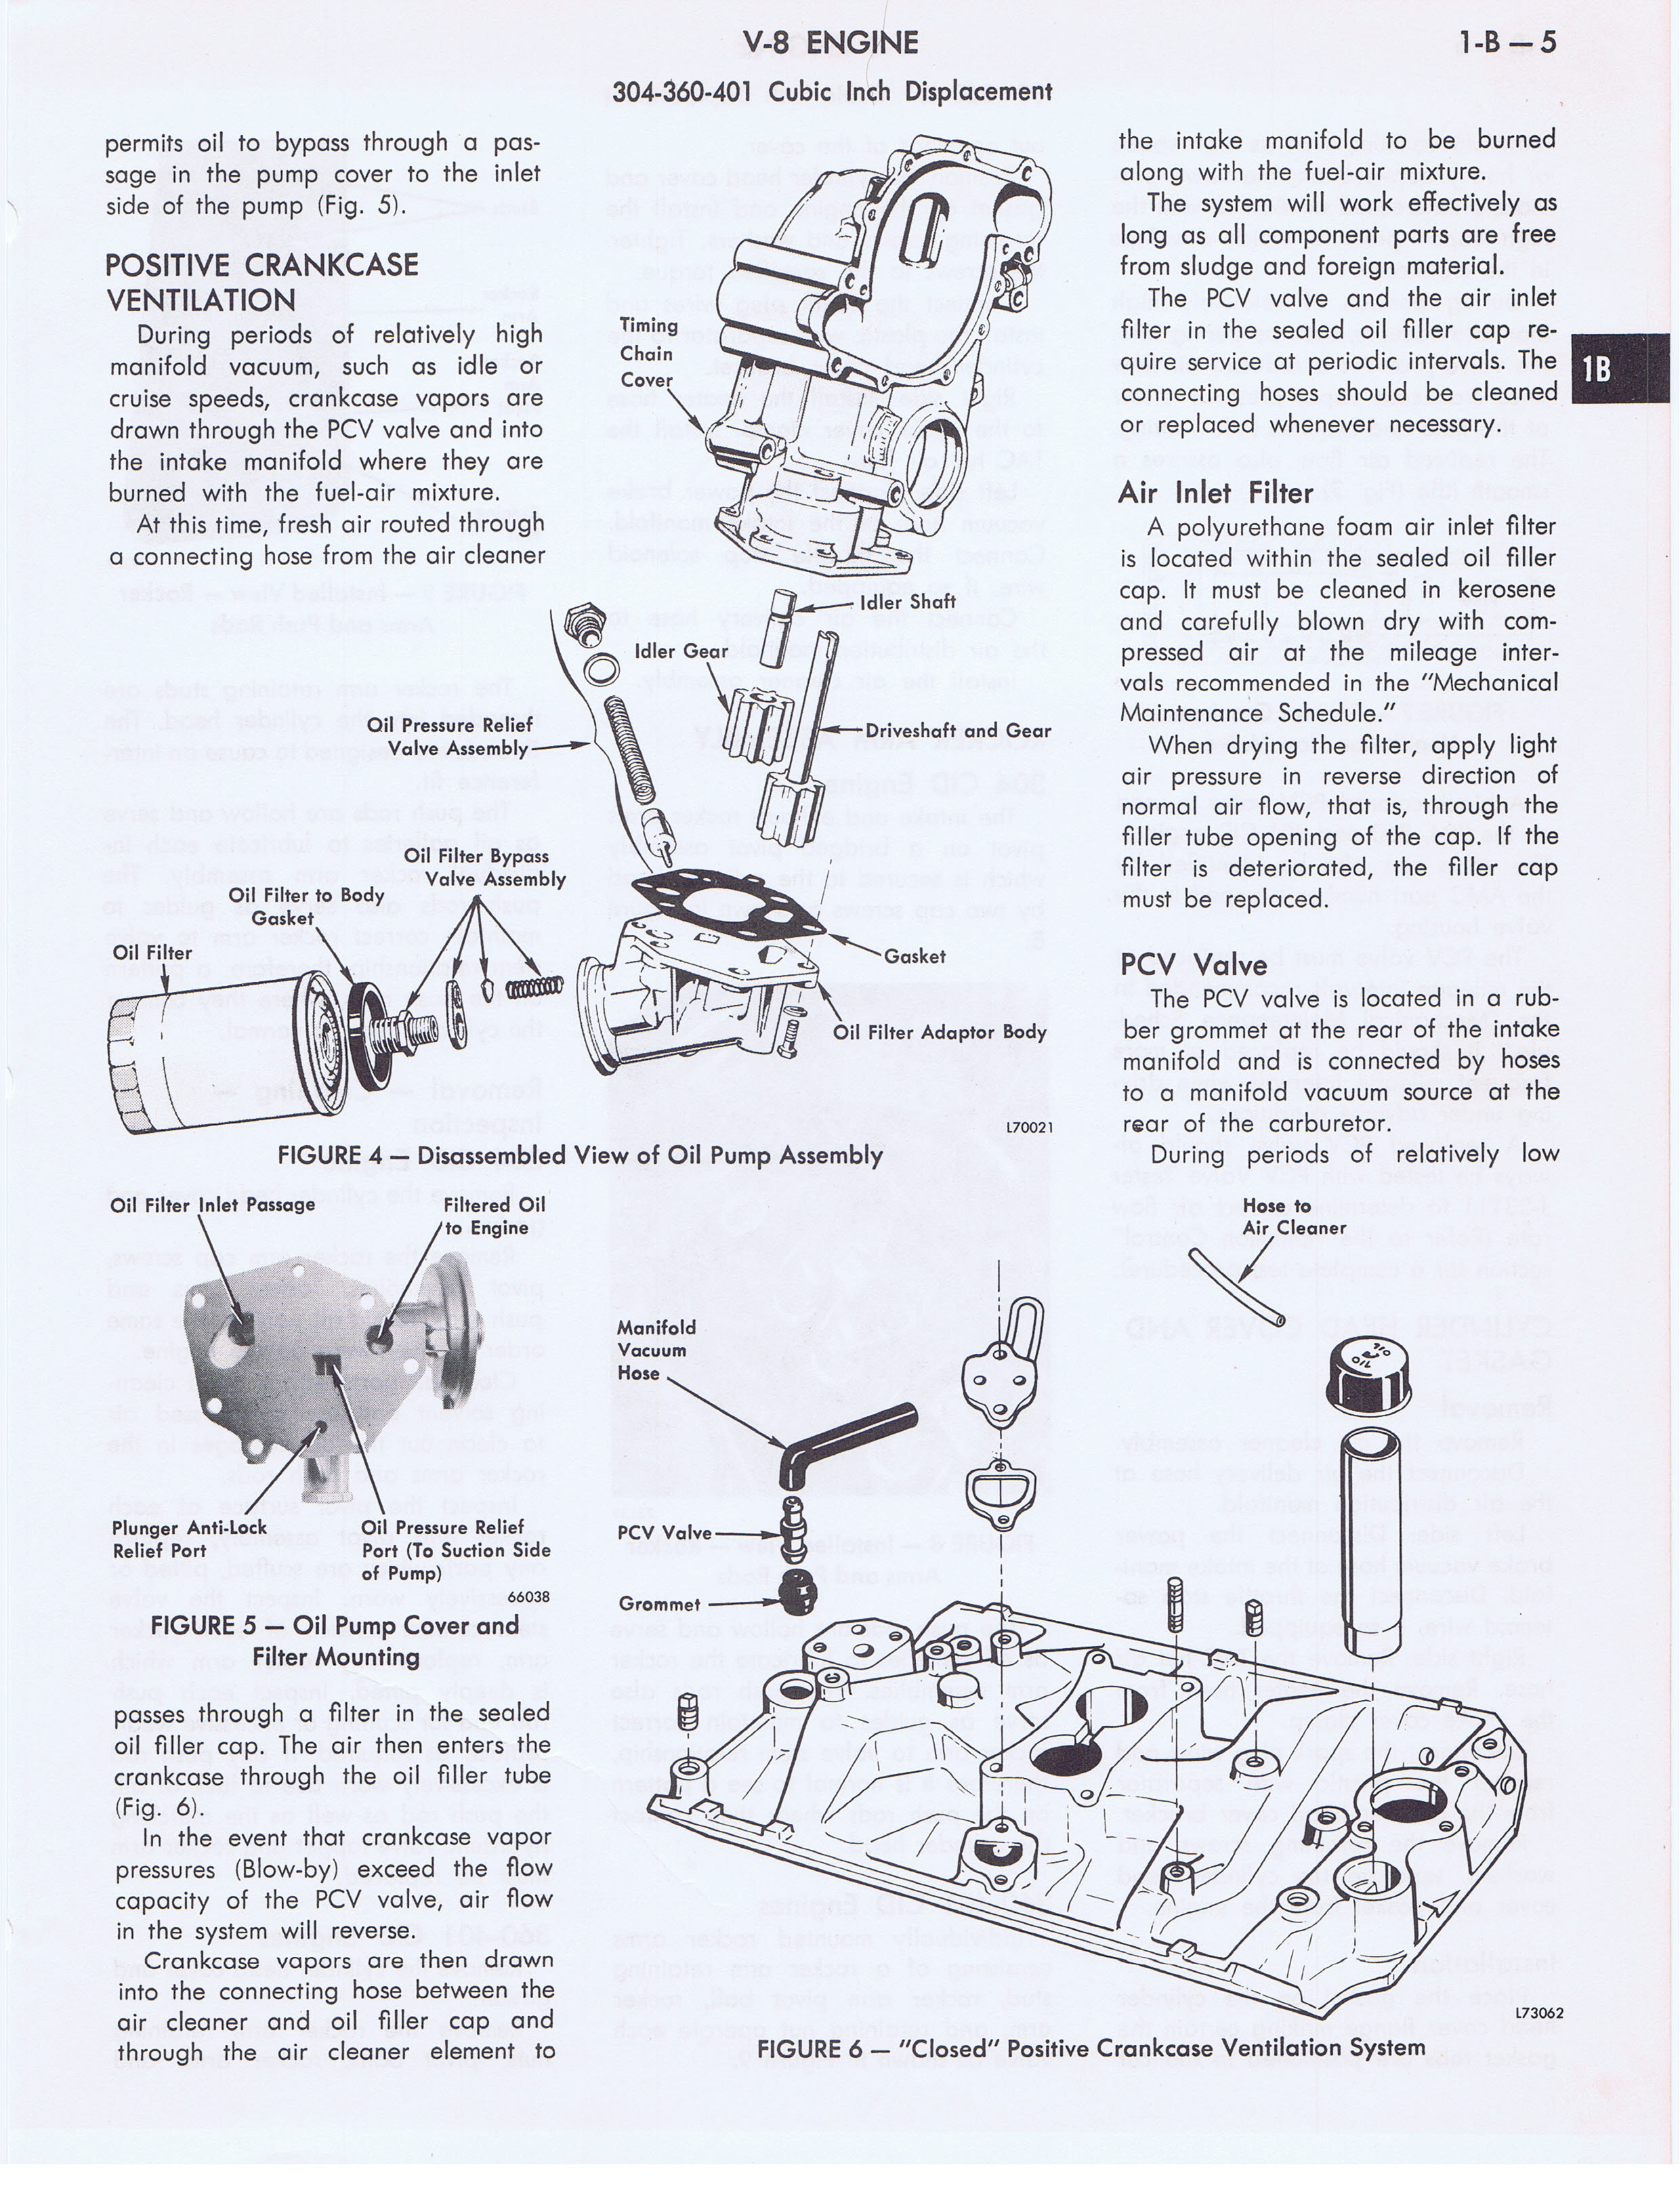 1973 AMC Technical Service Manual page 51 of 487